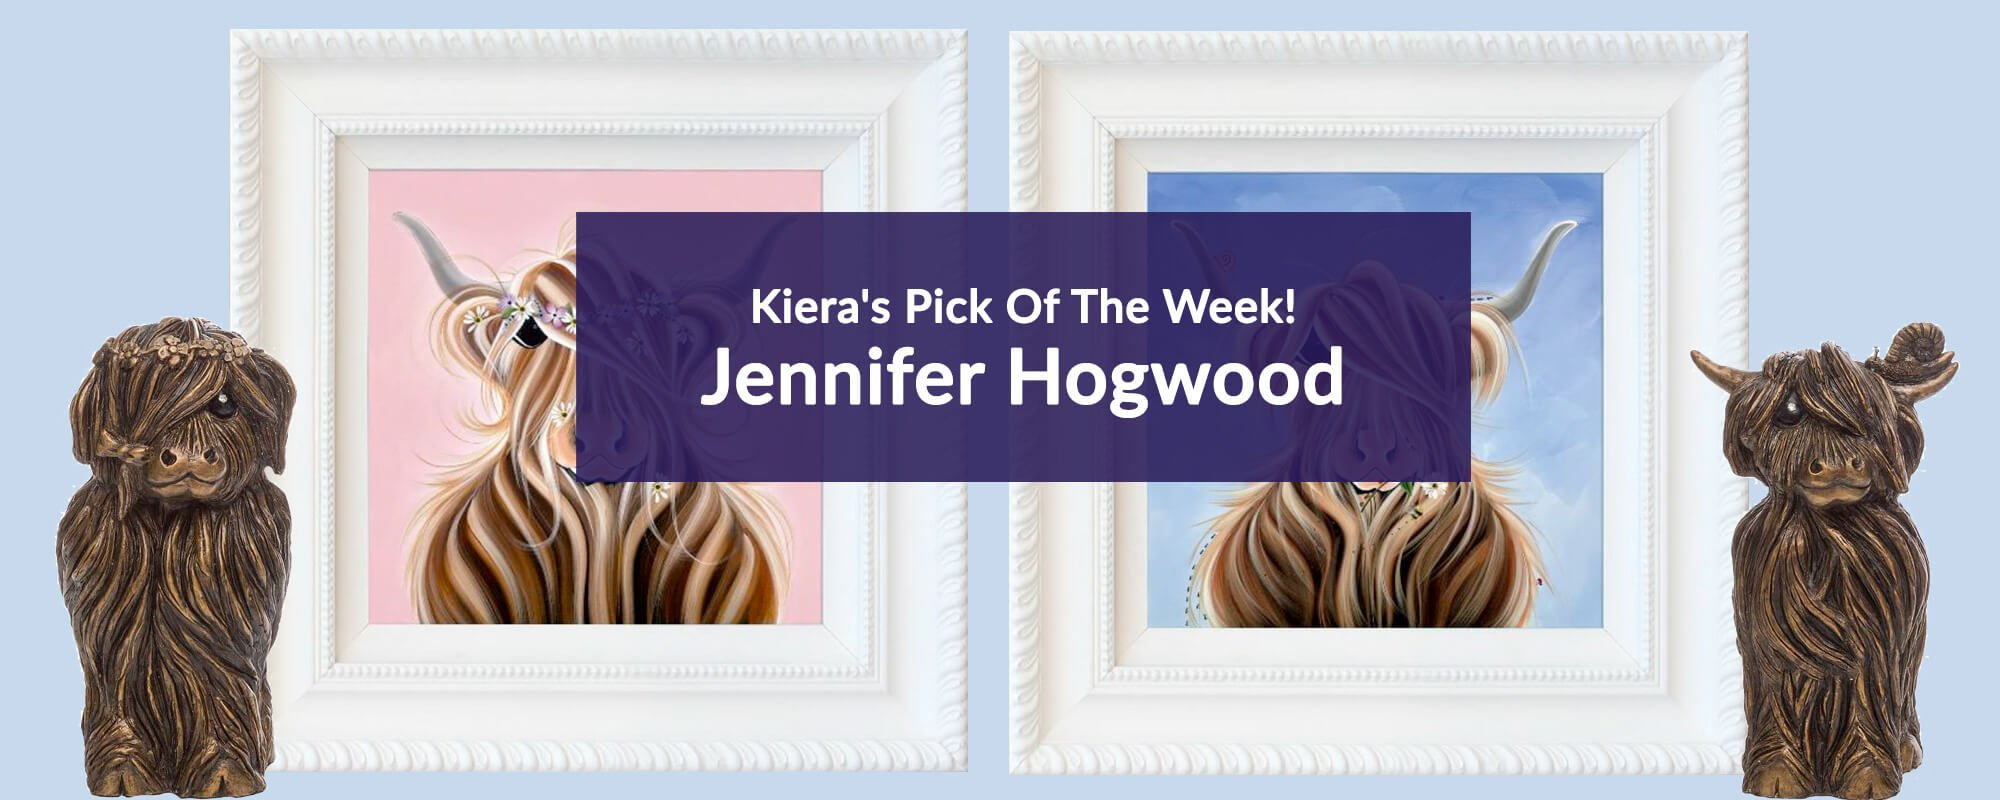 Kiera's Pick Of The Week! – Jennifer Hogwood